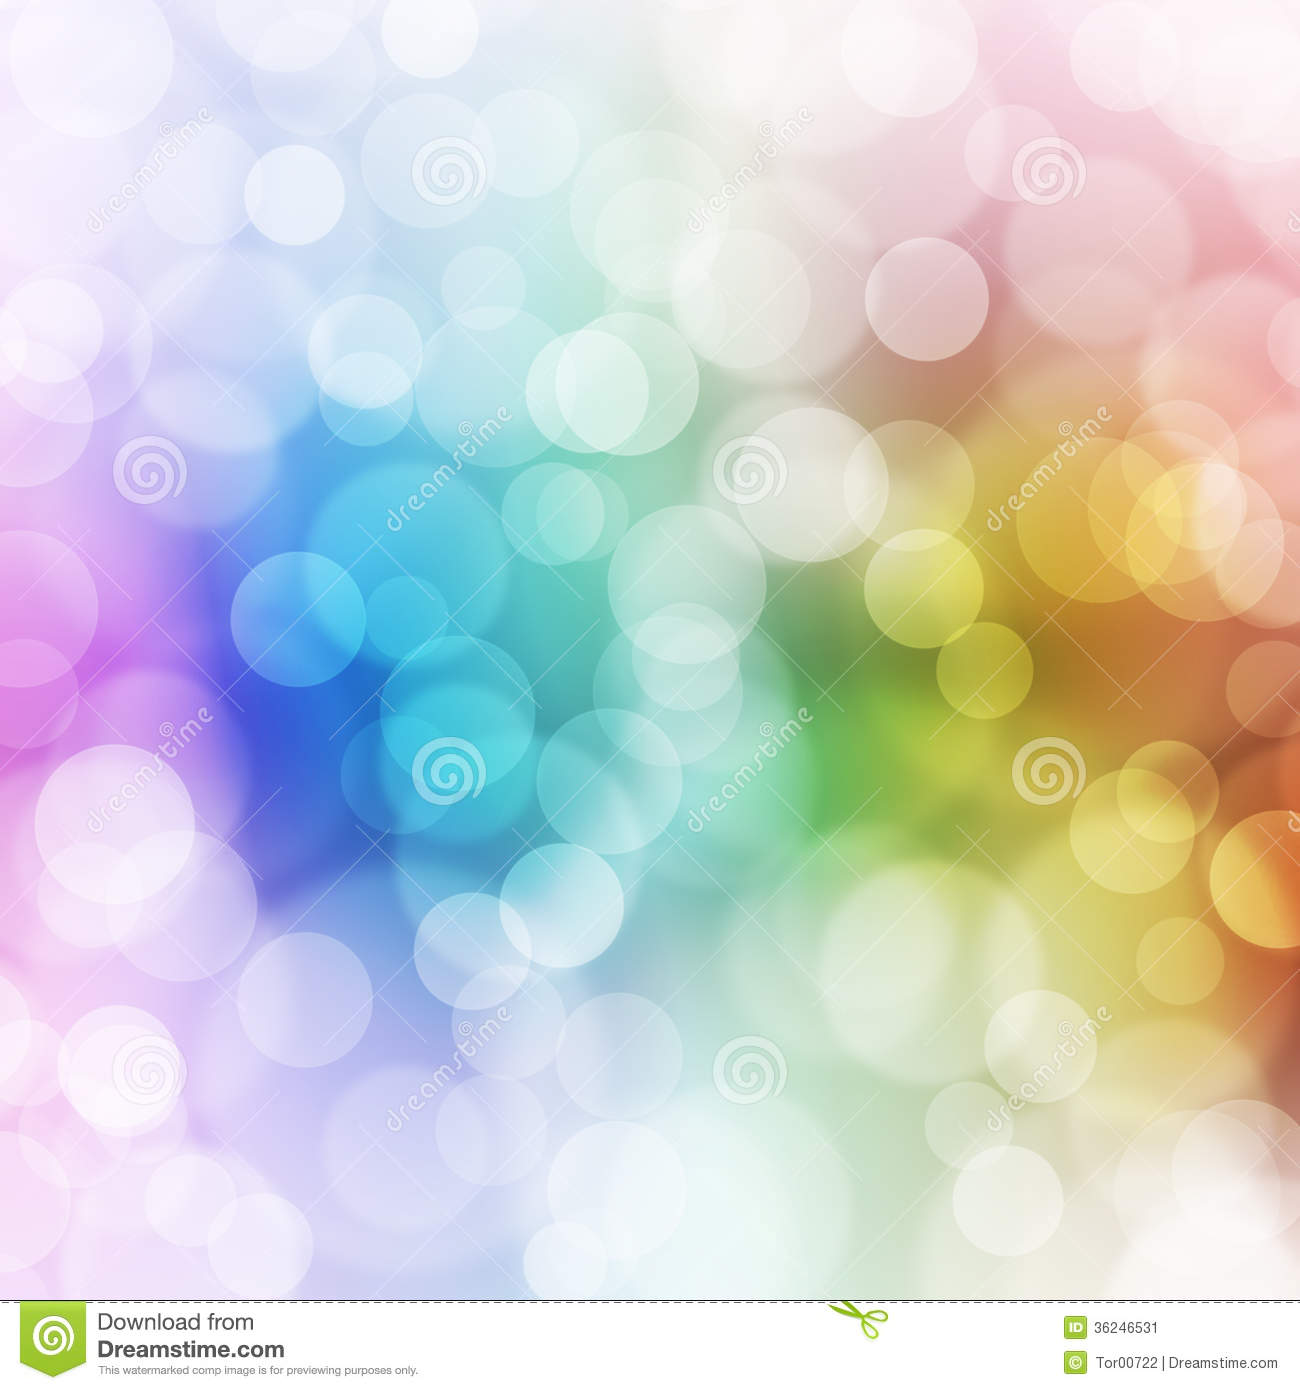 happy people colorful wallpaper - photo #7